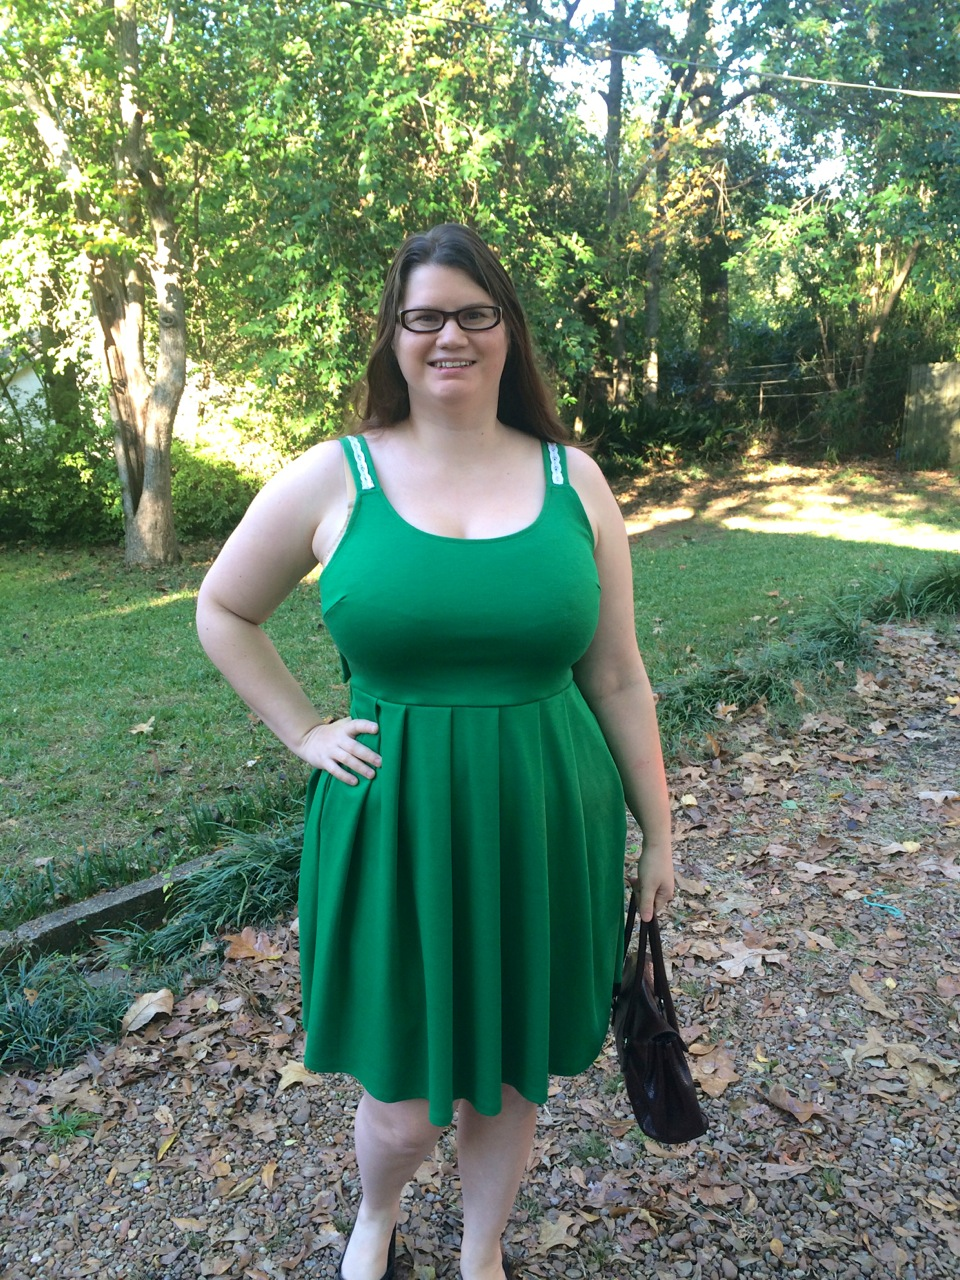 holly pond single bbw women Pofcom is the world's largest online dating site as a community of more than 40 million individual opinions and ways of experiencing the world, we are always coming up with new ways for our users to meet, go on dates, and fall in love.